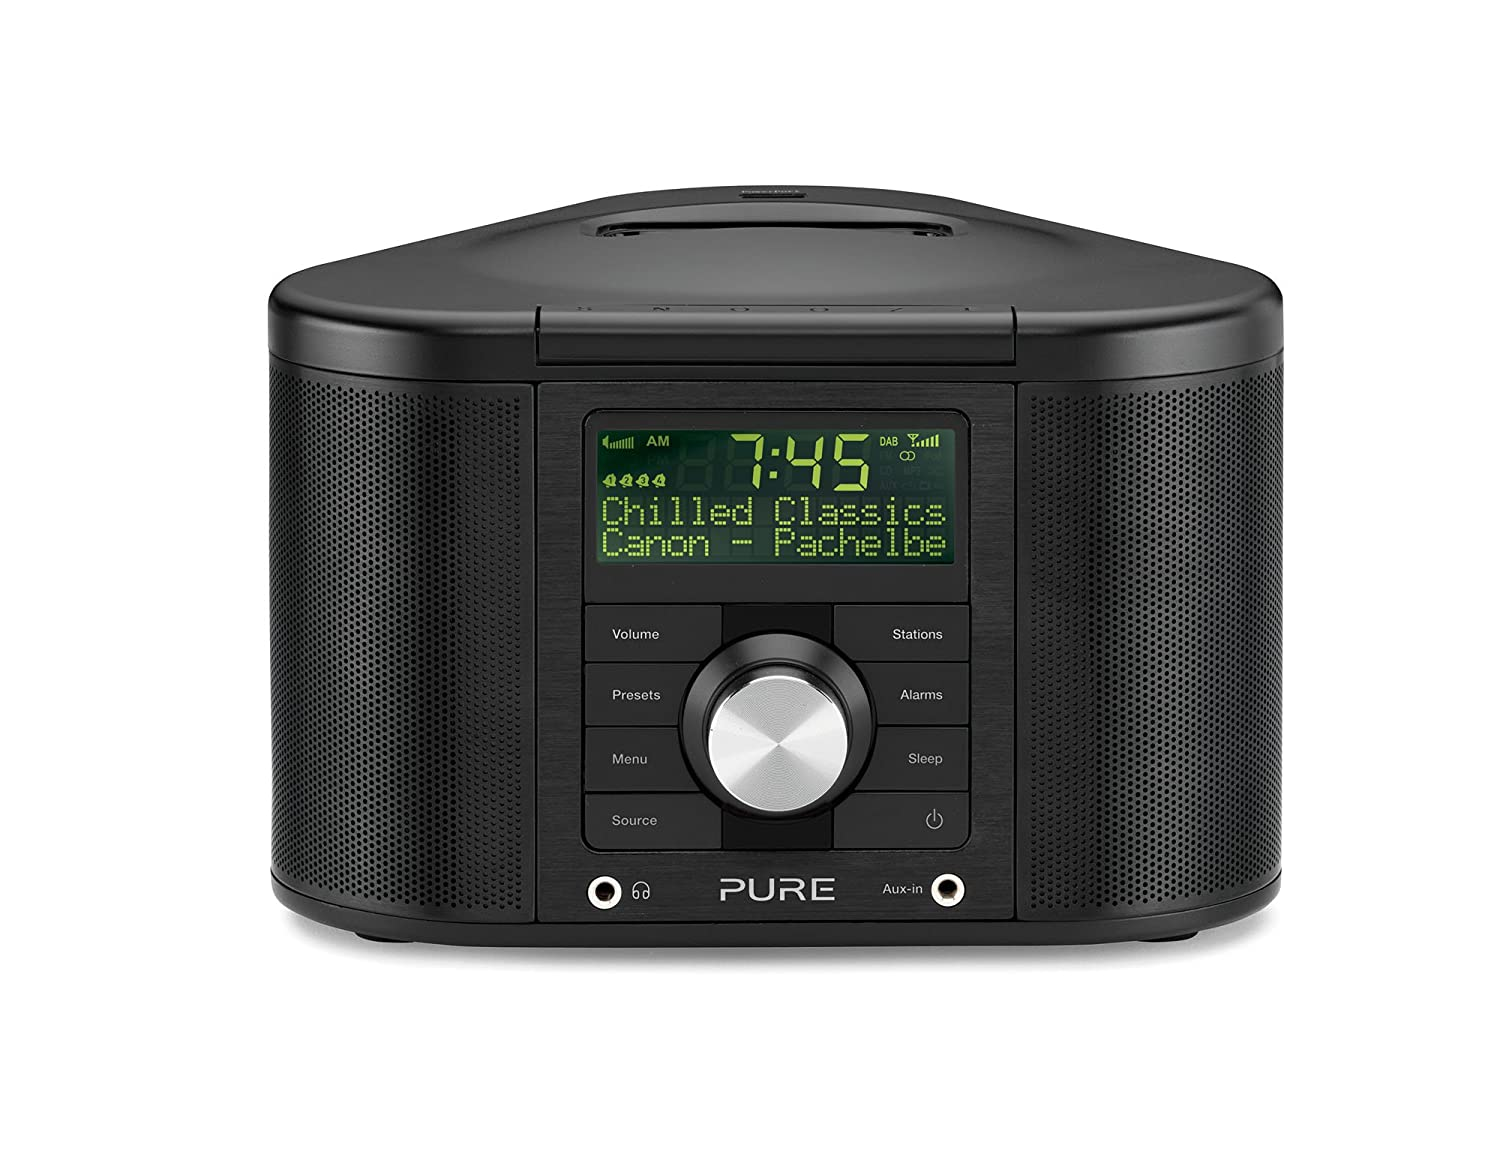 pure digital chronos idock series ii alarm clock dab radio iphone ipod. Black Bedroom Furniture Sets. Home Design Ideas